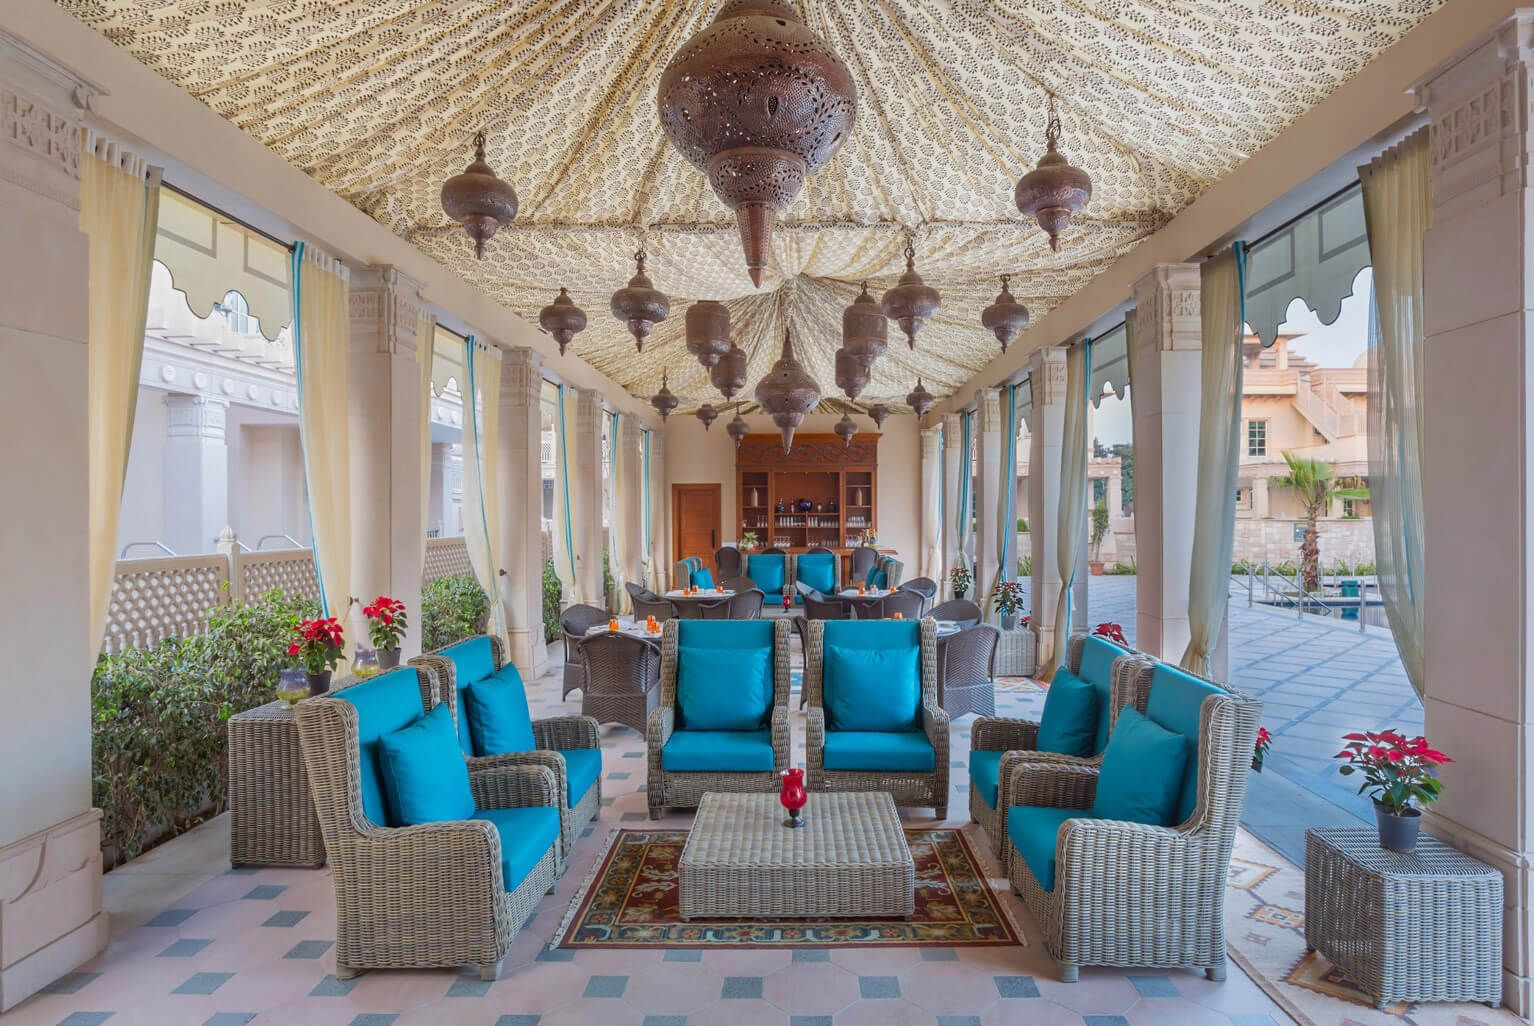 Our Pick of 5 Hotels for a destination wedding nearby